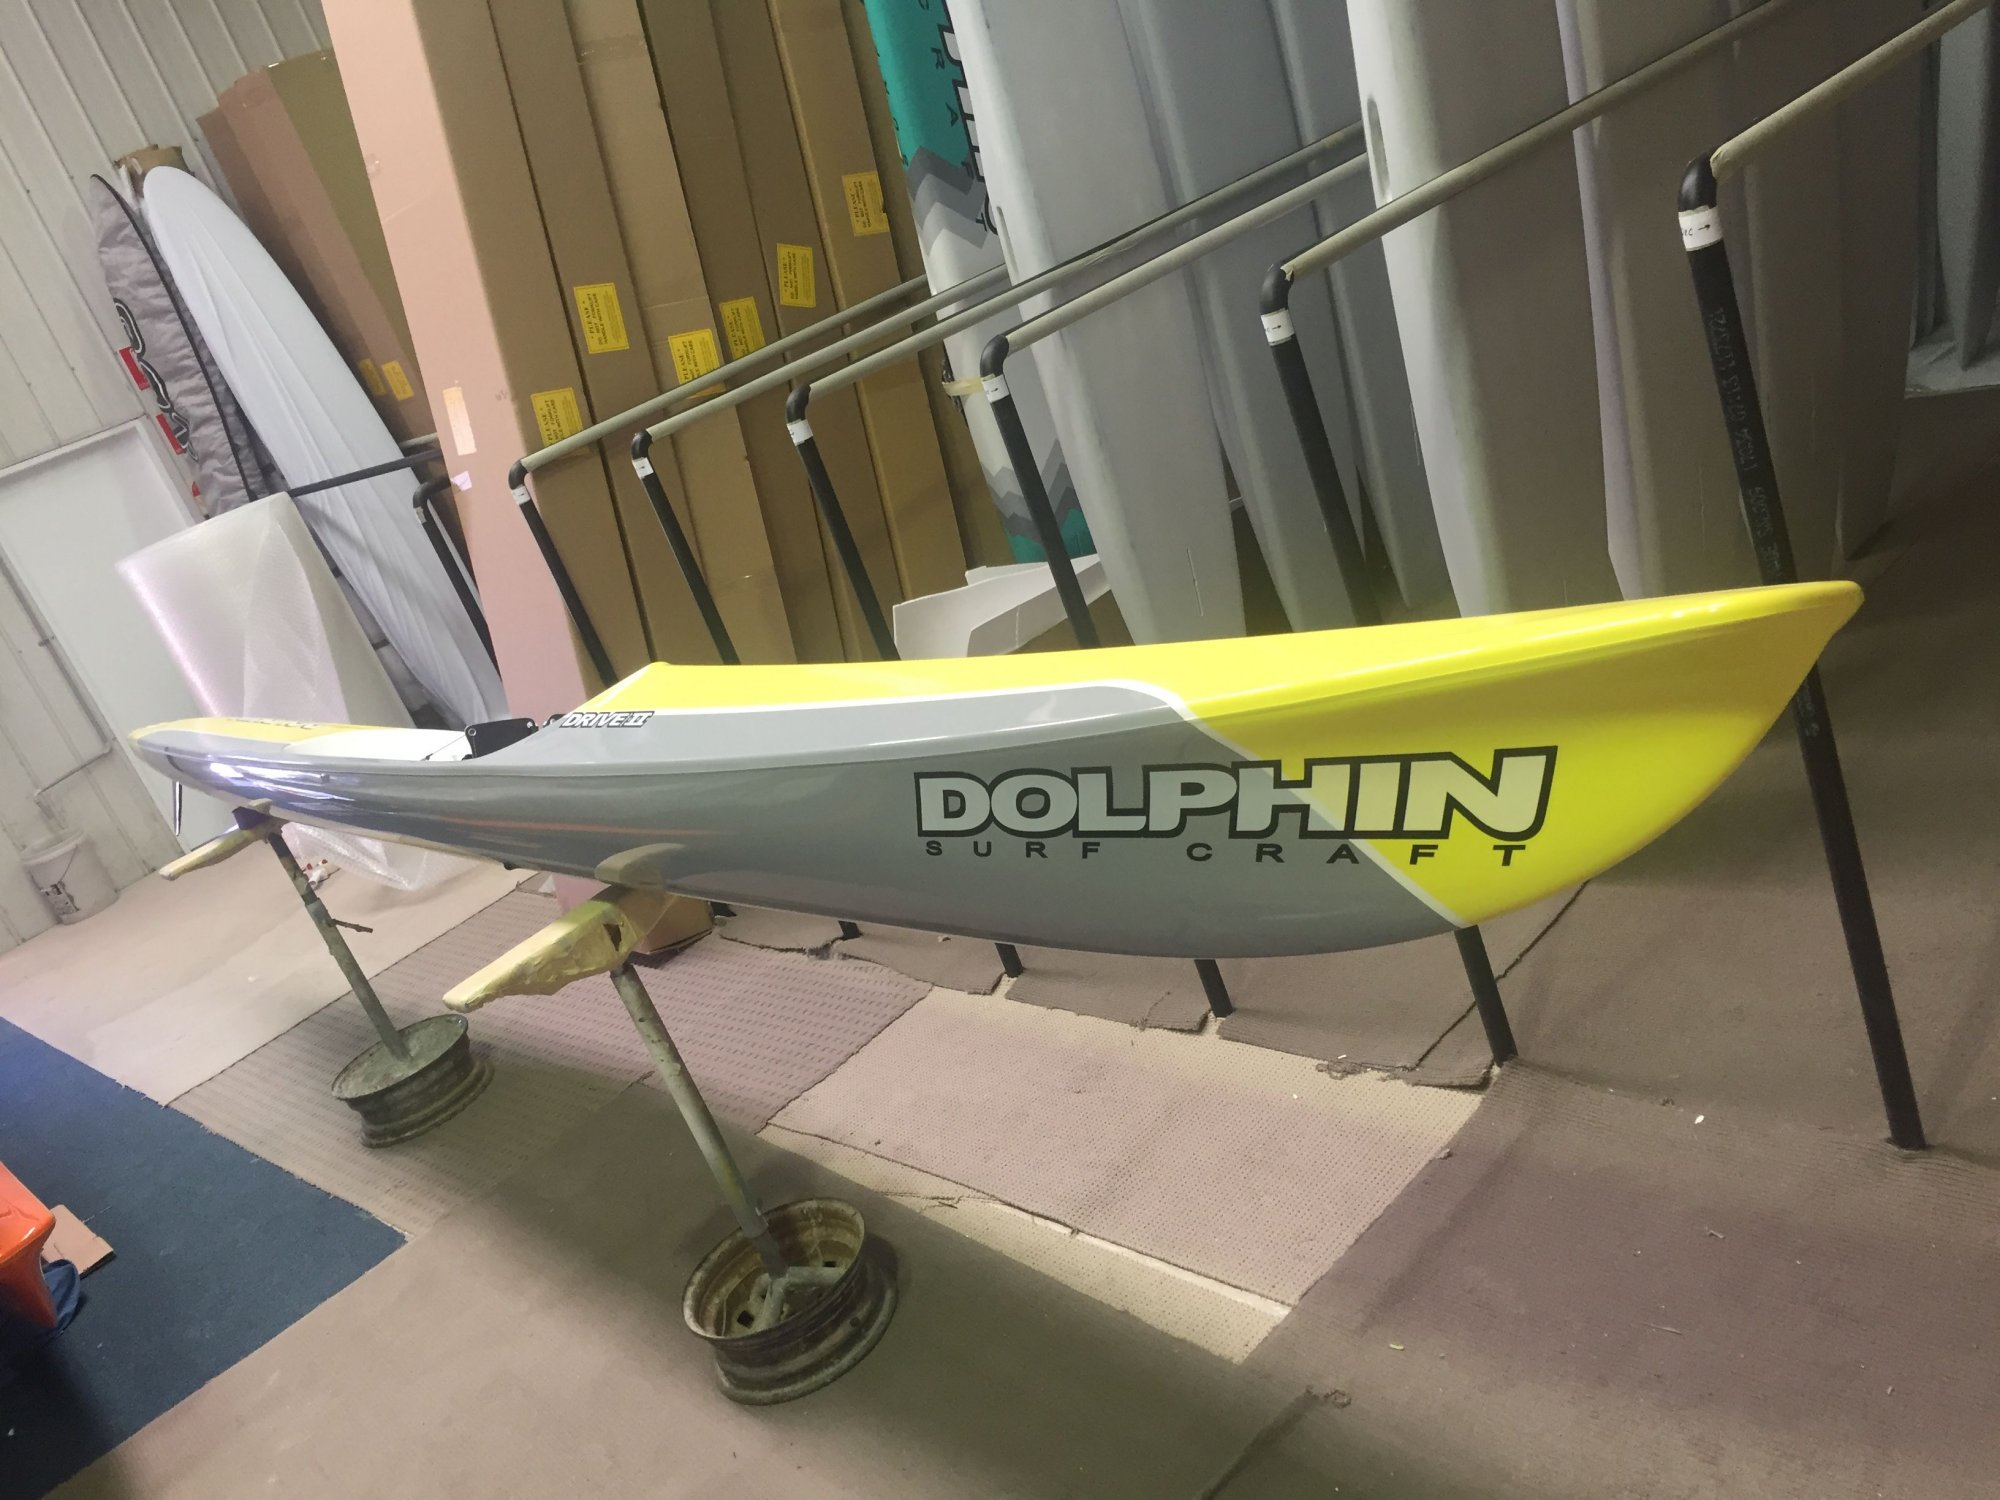 Dolphin Adjustable Drive II Surf Ski 19' - Demo 8227